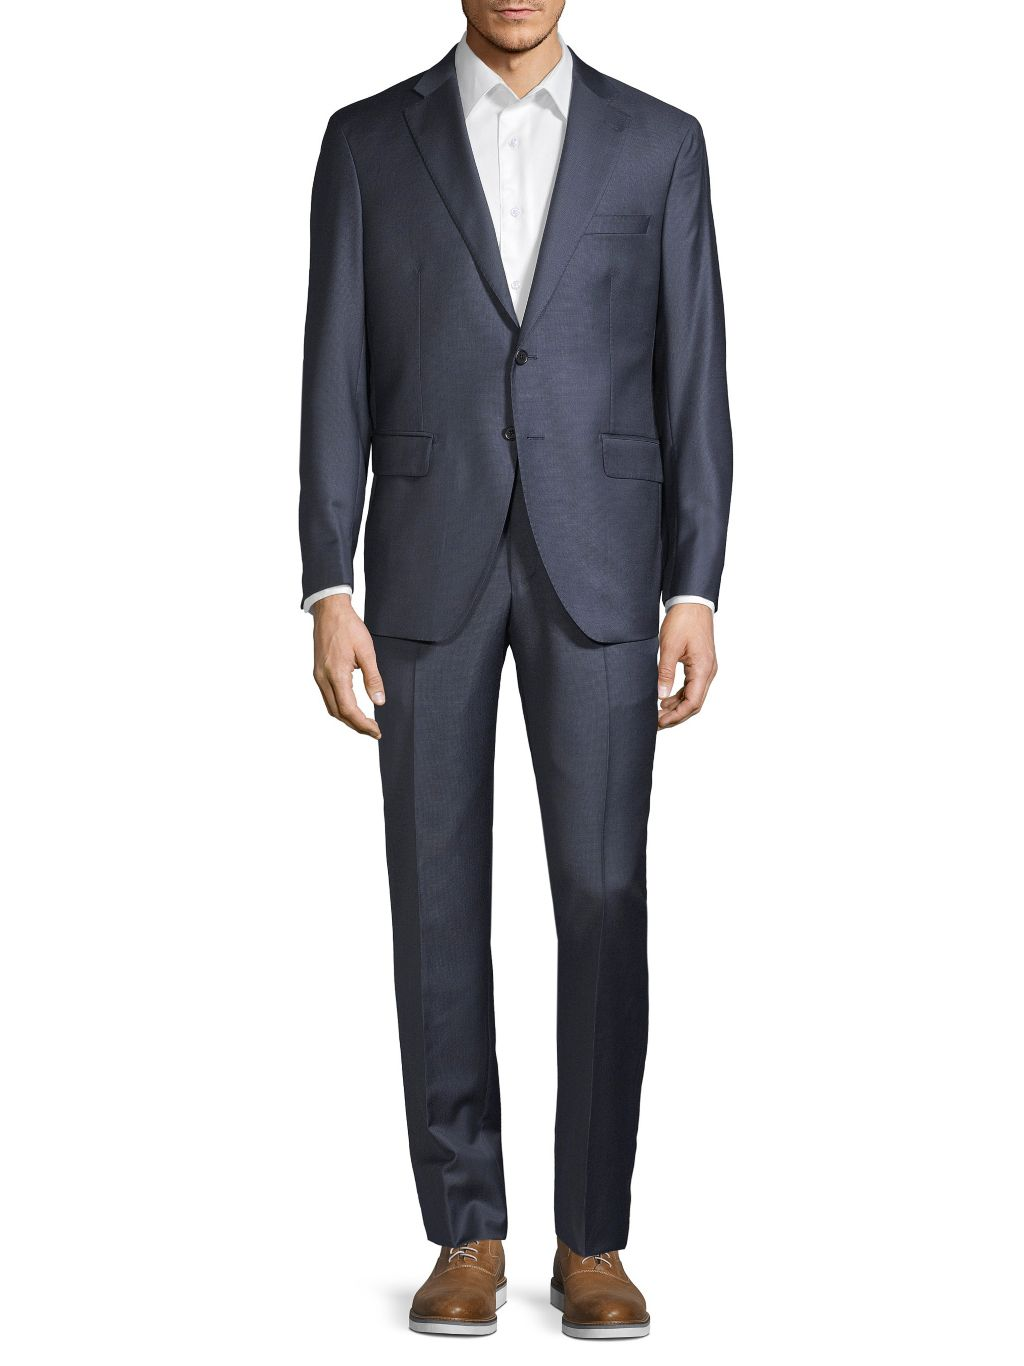 Saks Fifth Avenue Made in Italy Two-Piece Modern-Fit Textured Wool Suit